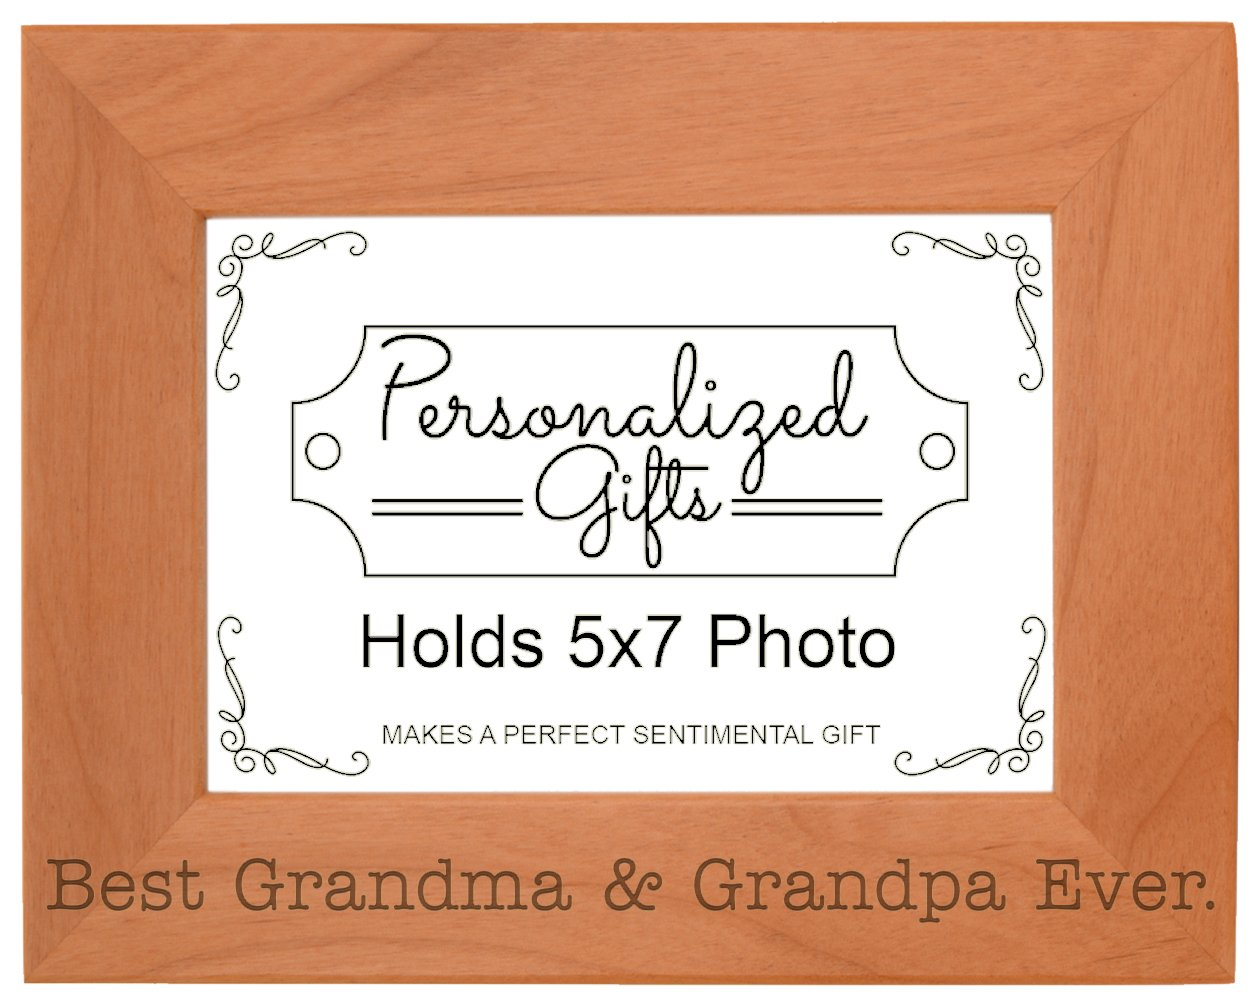 ThisWear Grandparents Gifts Best Grandma Grandpa Ever Natural Wood Engraved 5x7 Landscape Picture Frame Wood